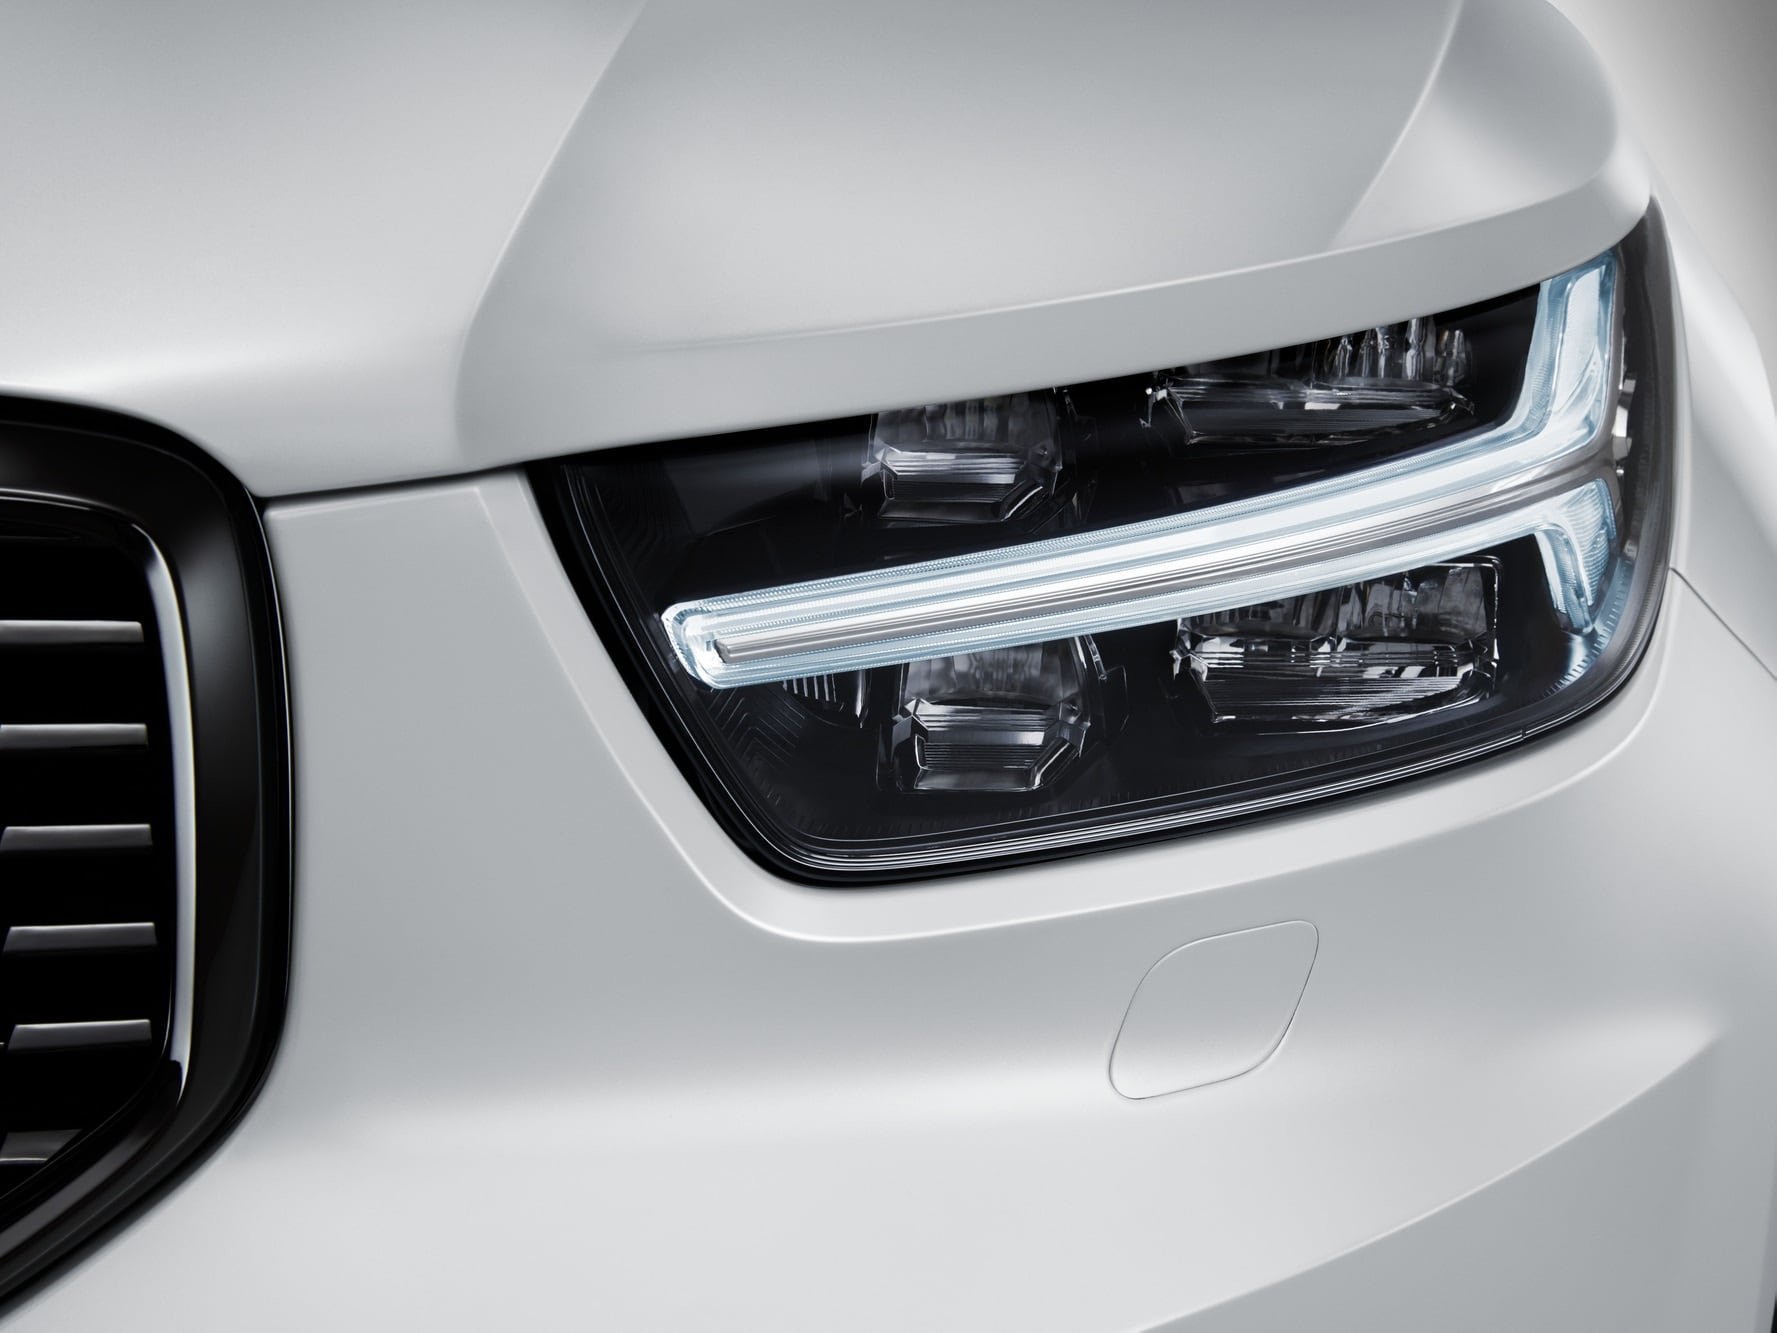 Front view of left side headlight lamp of Volvo XC40 Recharge model